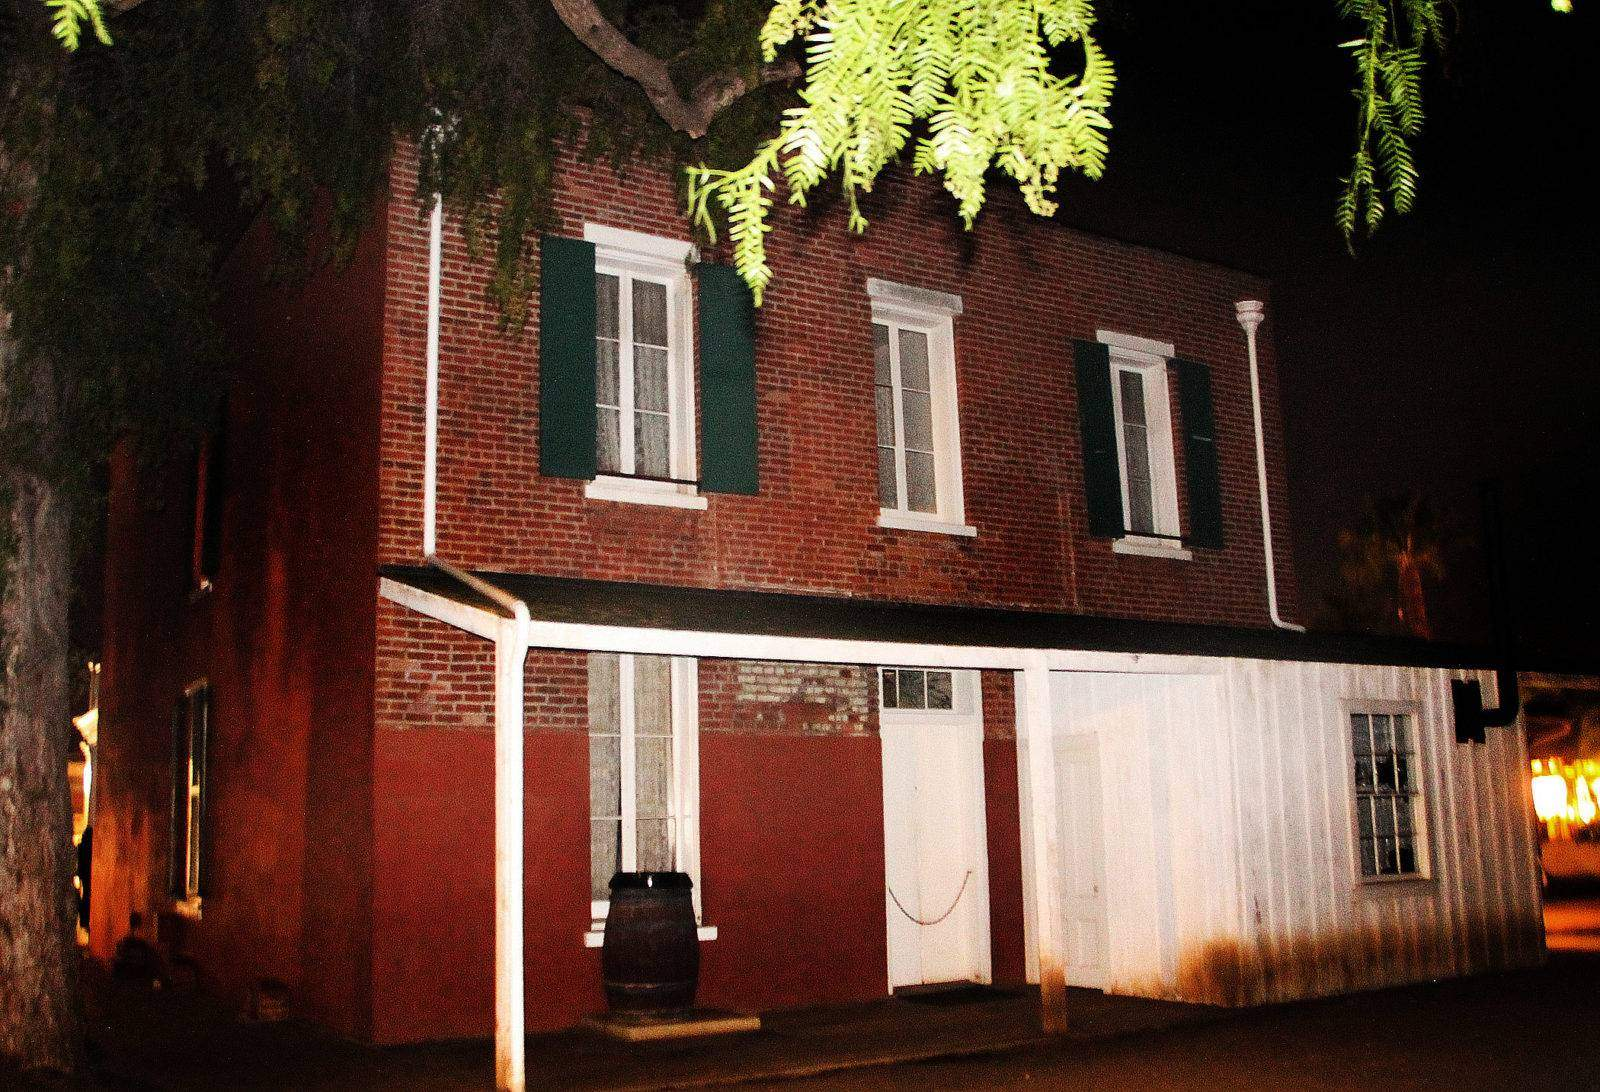 The Whaley House in Old Town San Diego is said to be one of the most haunted homes in all of America. We've had our own paranormal experience here!